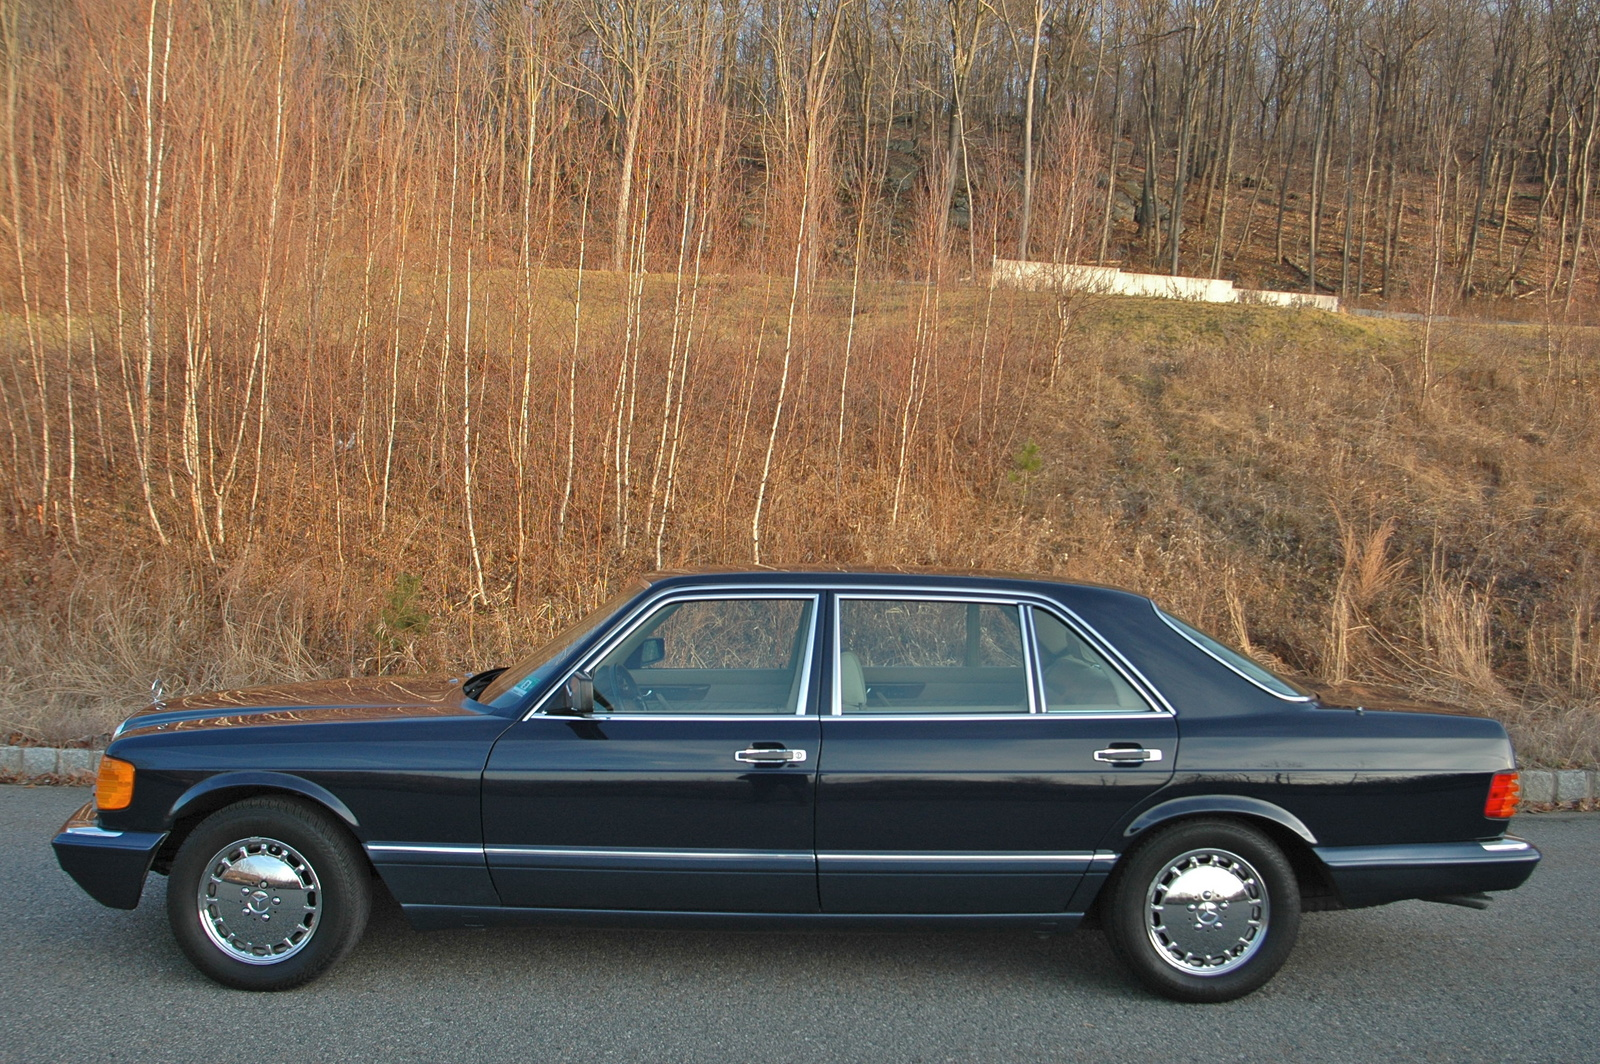 1990 mercedes benz 560 class pictures cargurus for Mercedes benz 560sel